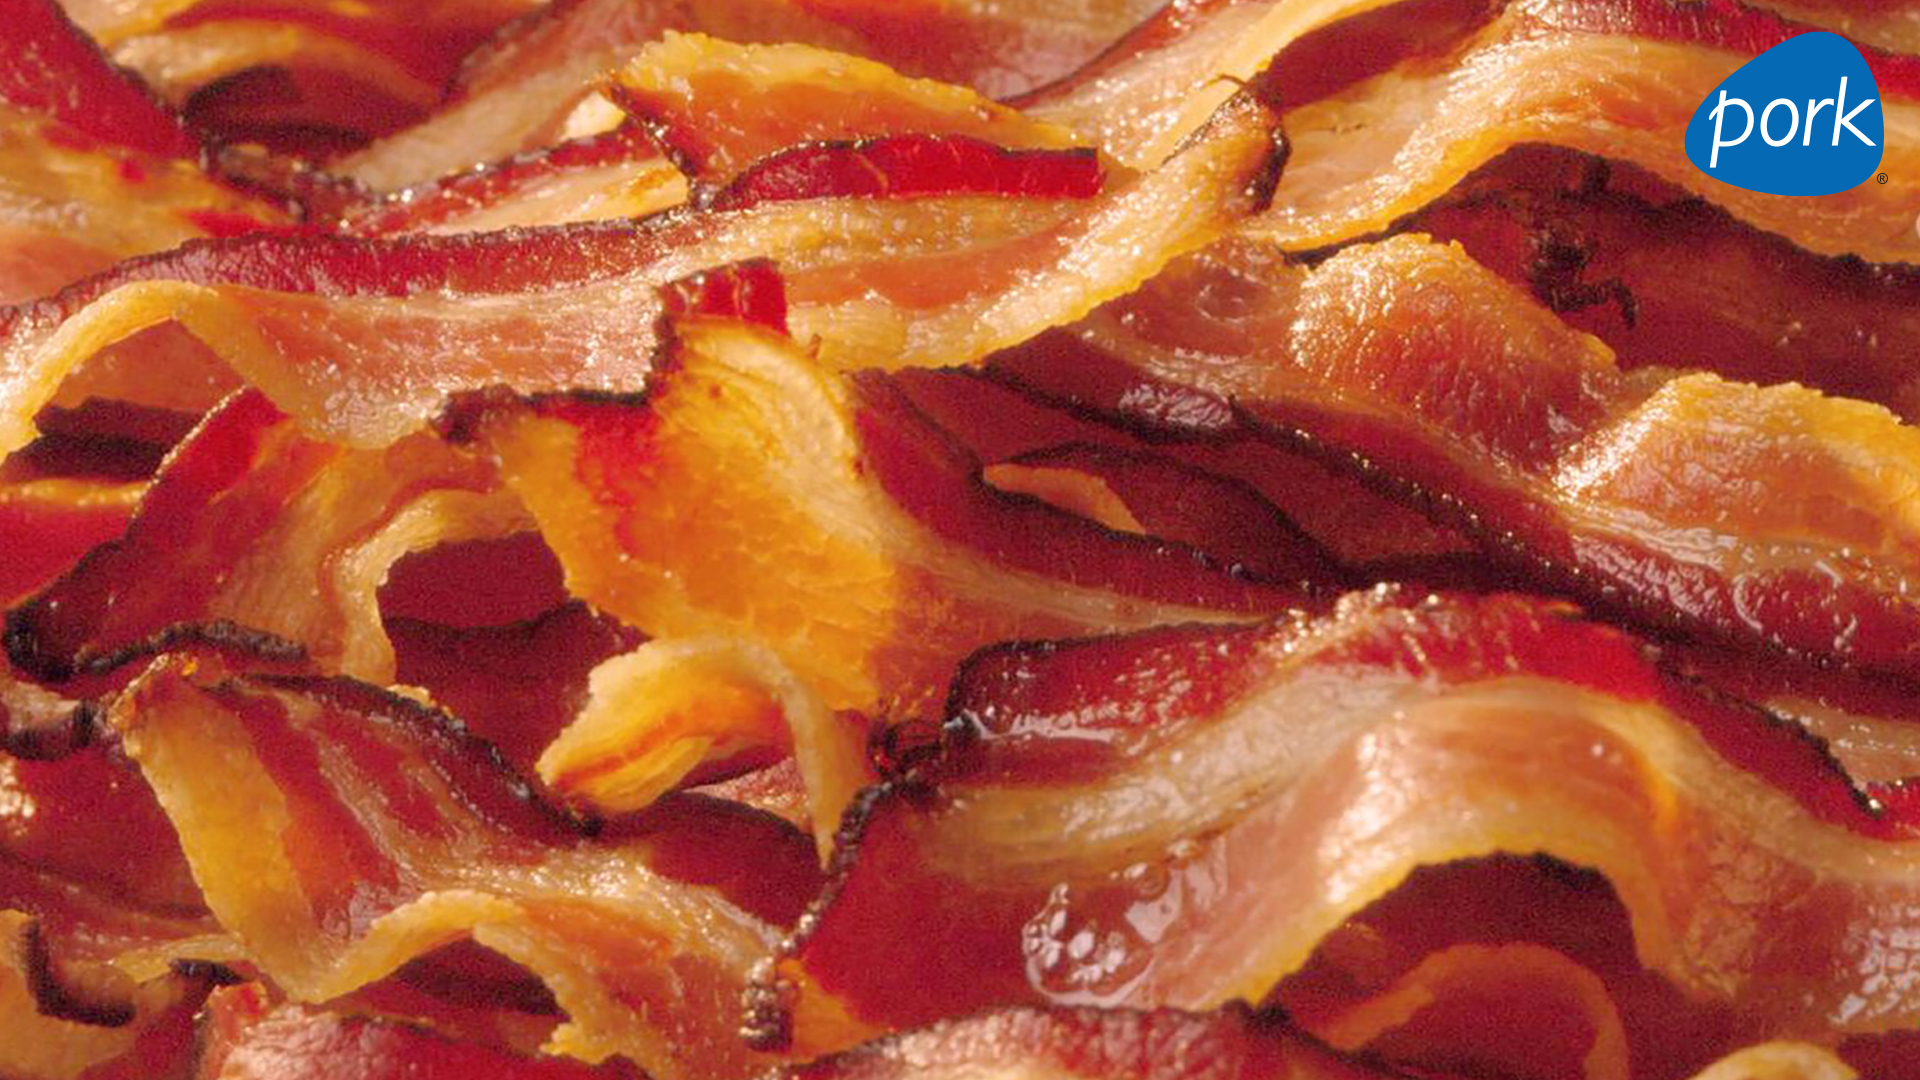 Bacon: The Culture Behind the Famous Pork Product